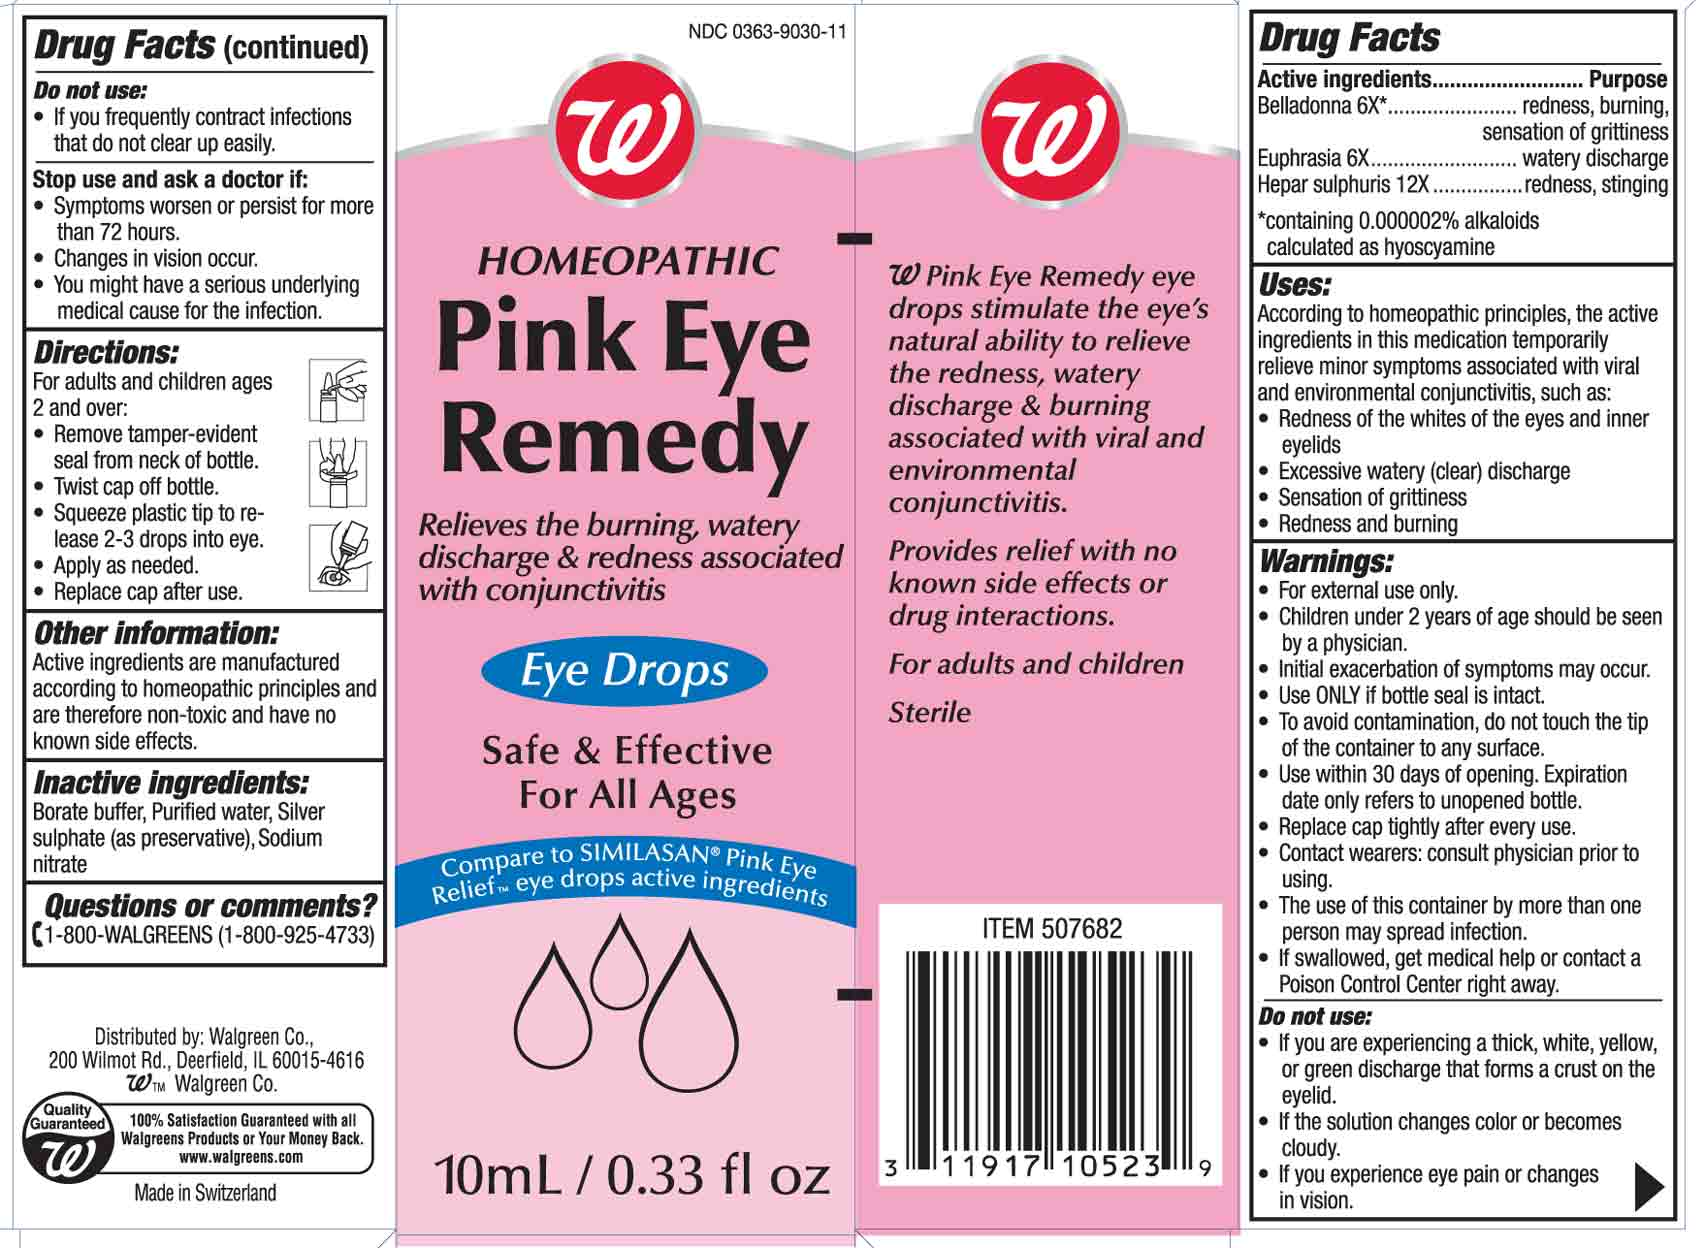 Pink Eye Remedy (Belladonna And Euphrasia And Hepar Sulphuris) Solution/ Drops [Walgreen Co]